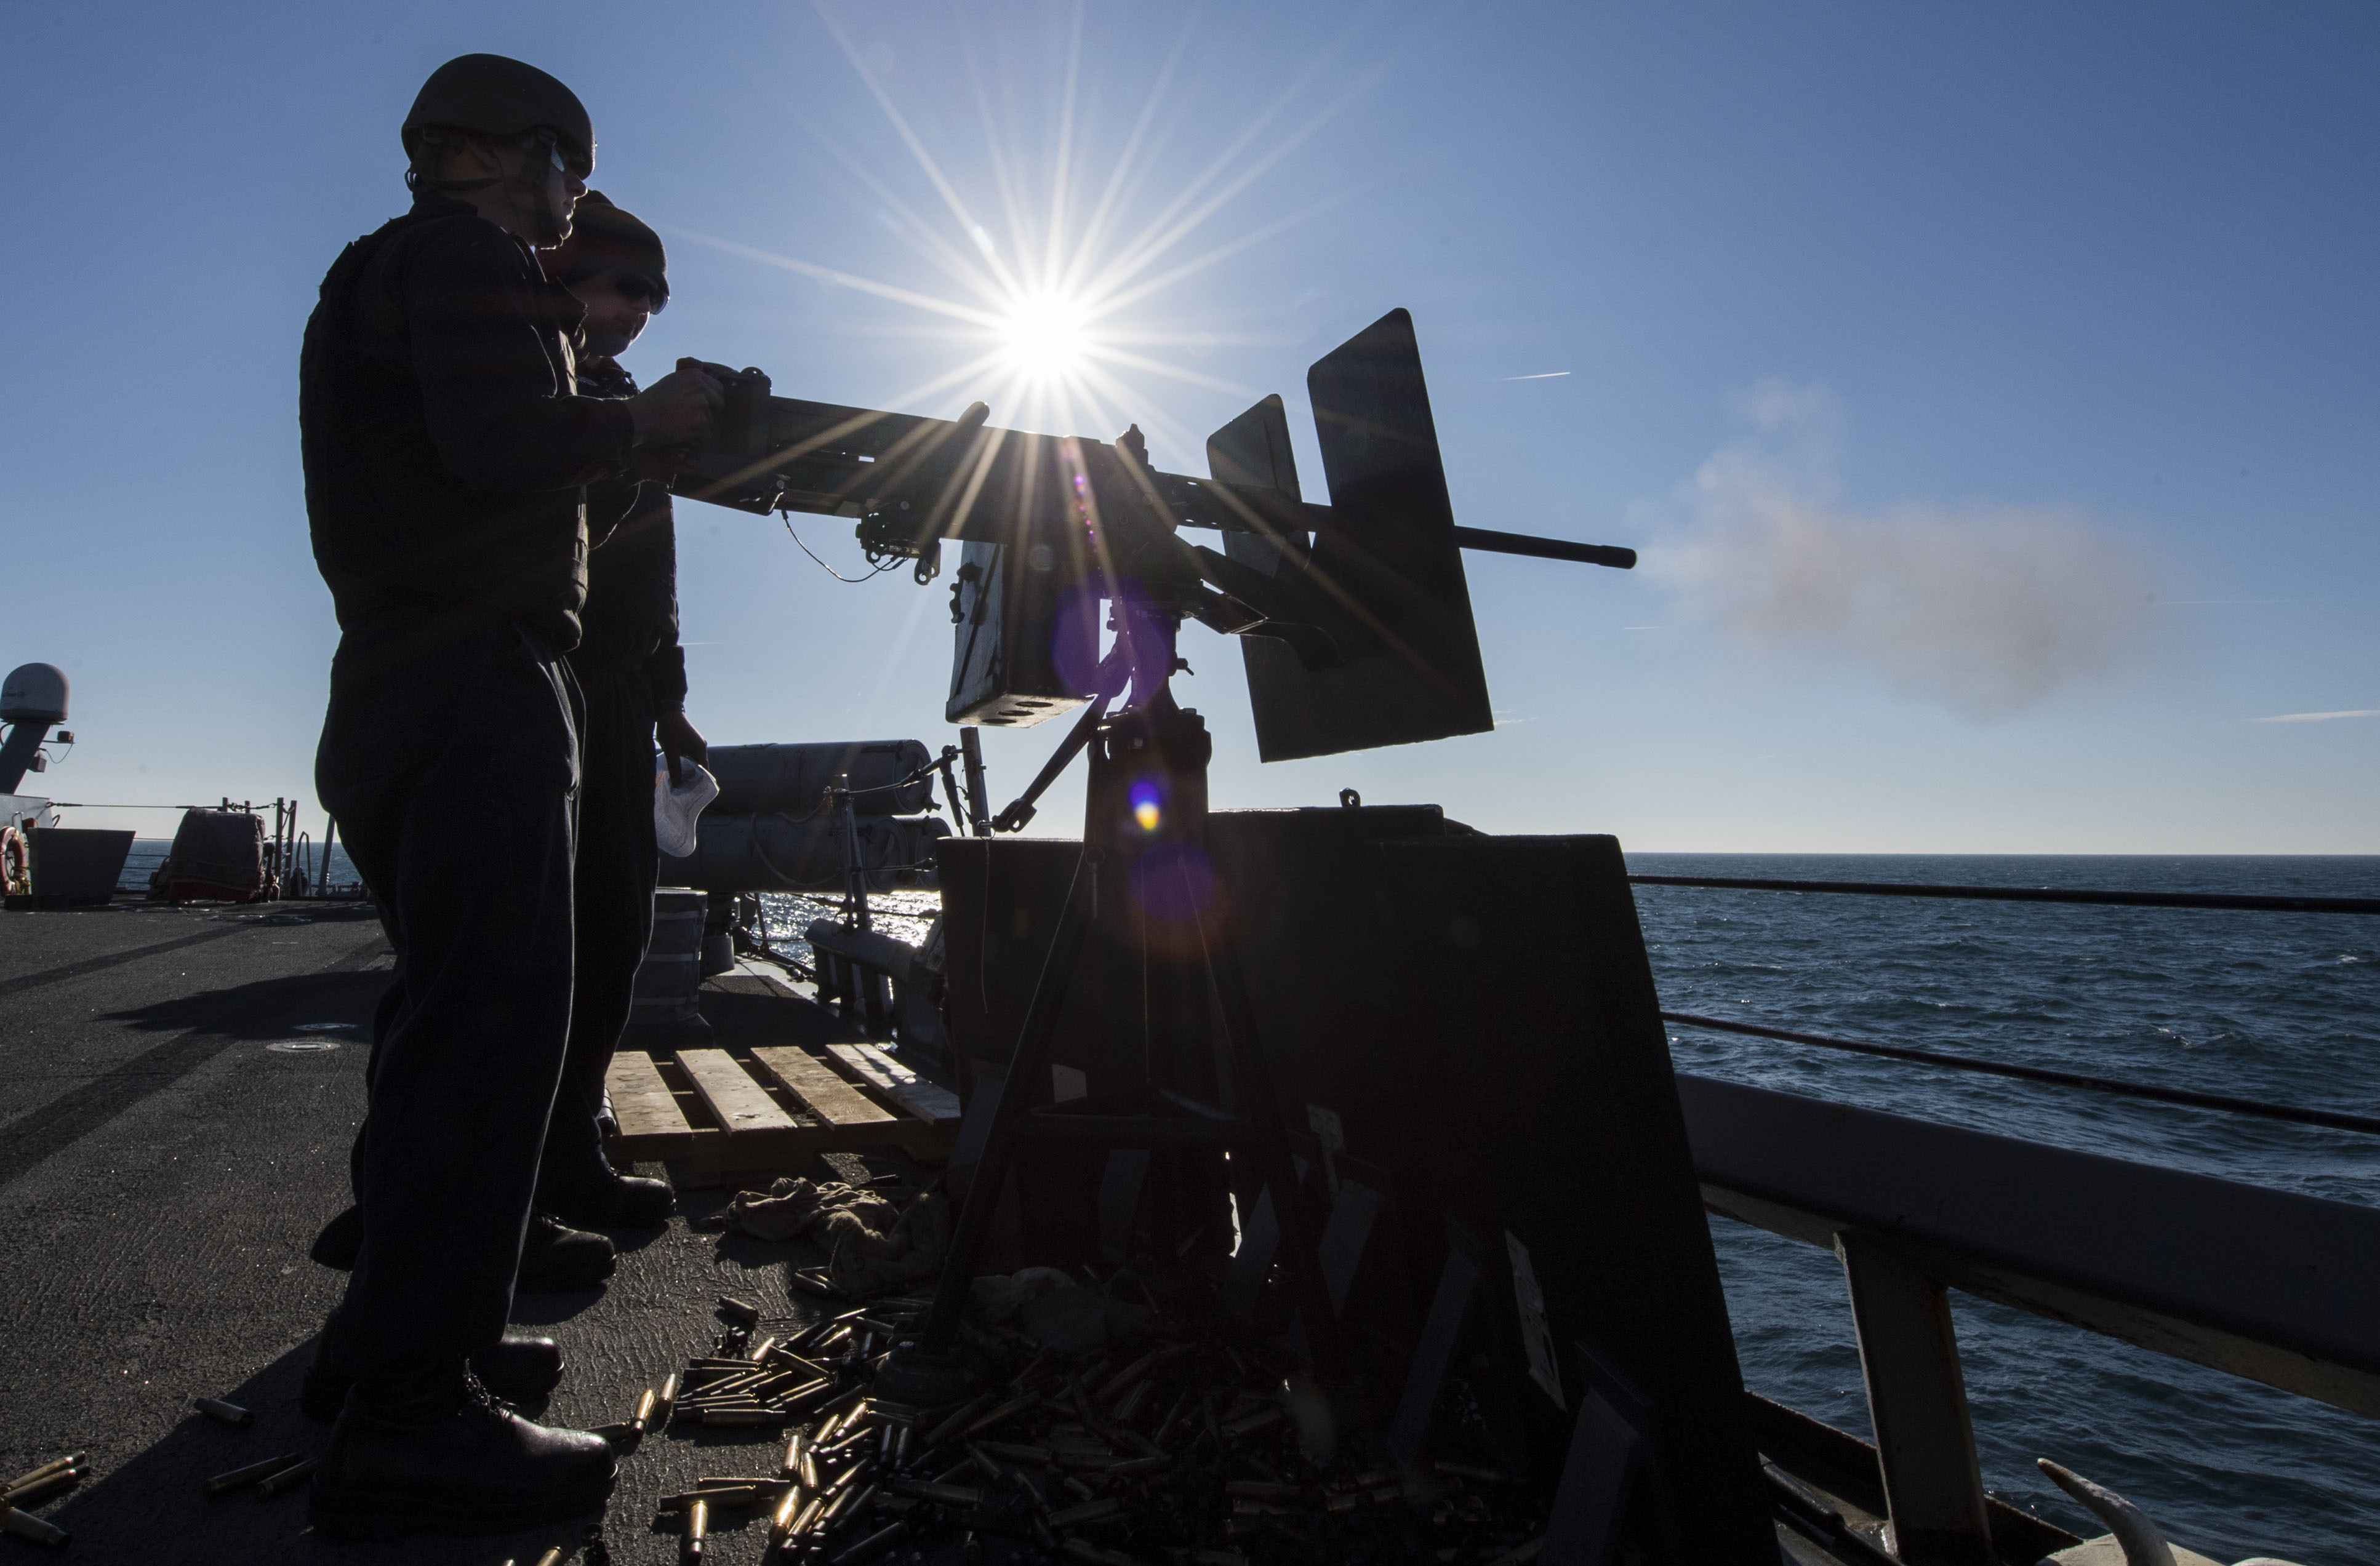 Sonar Technician (Surface) 2nd Class Jacob Ferrantino fires a .50-caliber machine gun aboard the Arleigh Burke-class guided-missile destroyer USS Carney during a live-fire exercise in the Black Sea, Jan. 6, 2018. (U.S. Navy photo by James R. Turner)